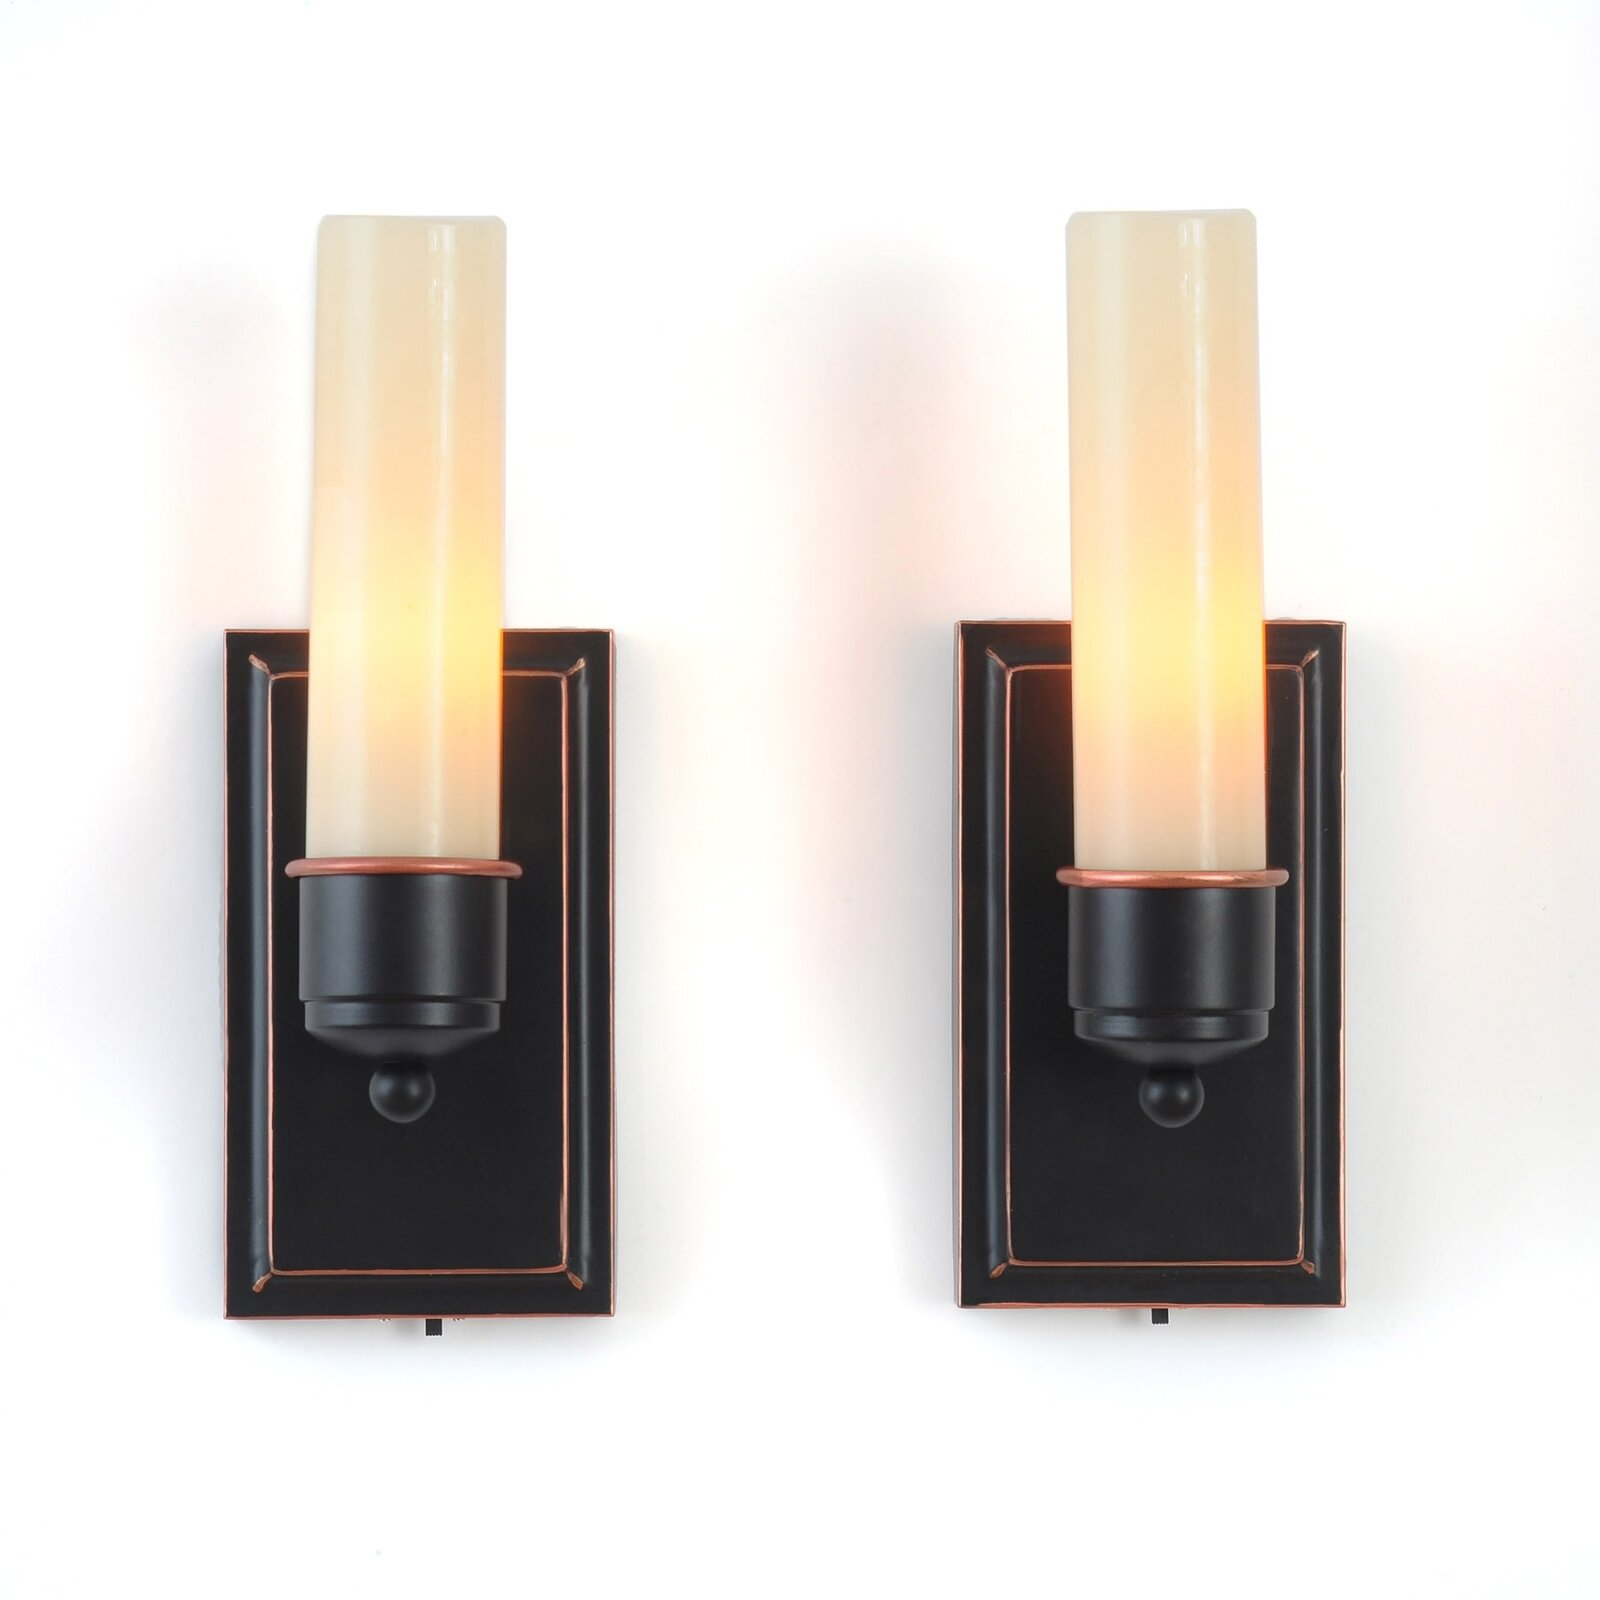 Wall Sconces With Flameless Candles : Lion Sports CandleTEK Wall Sconces Flameless Candles Set of 2 eBay